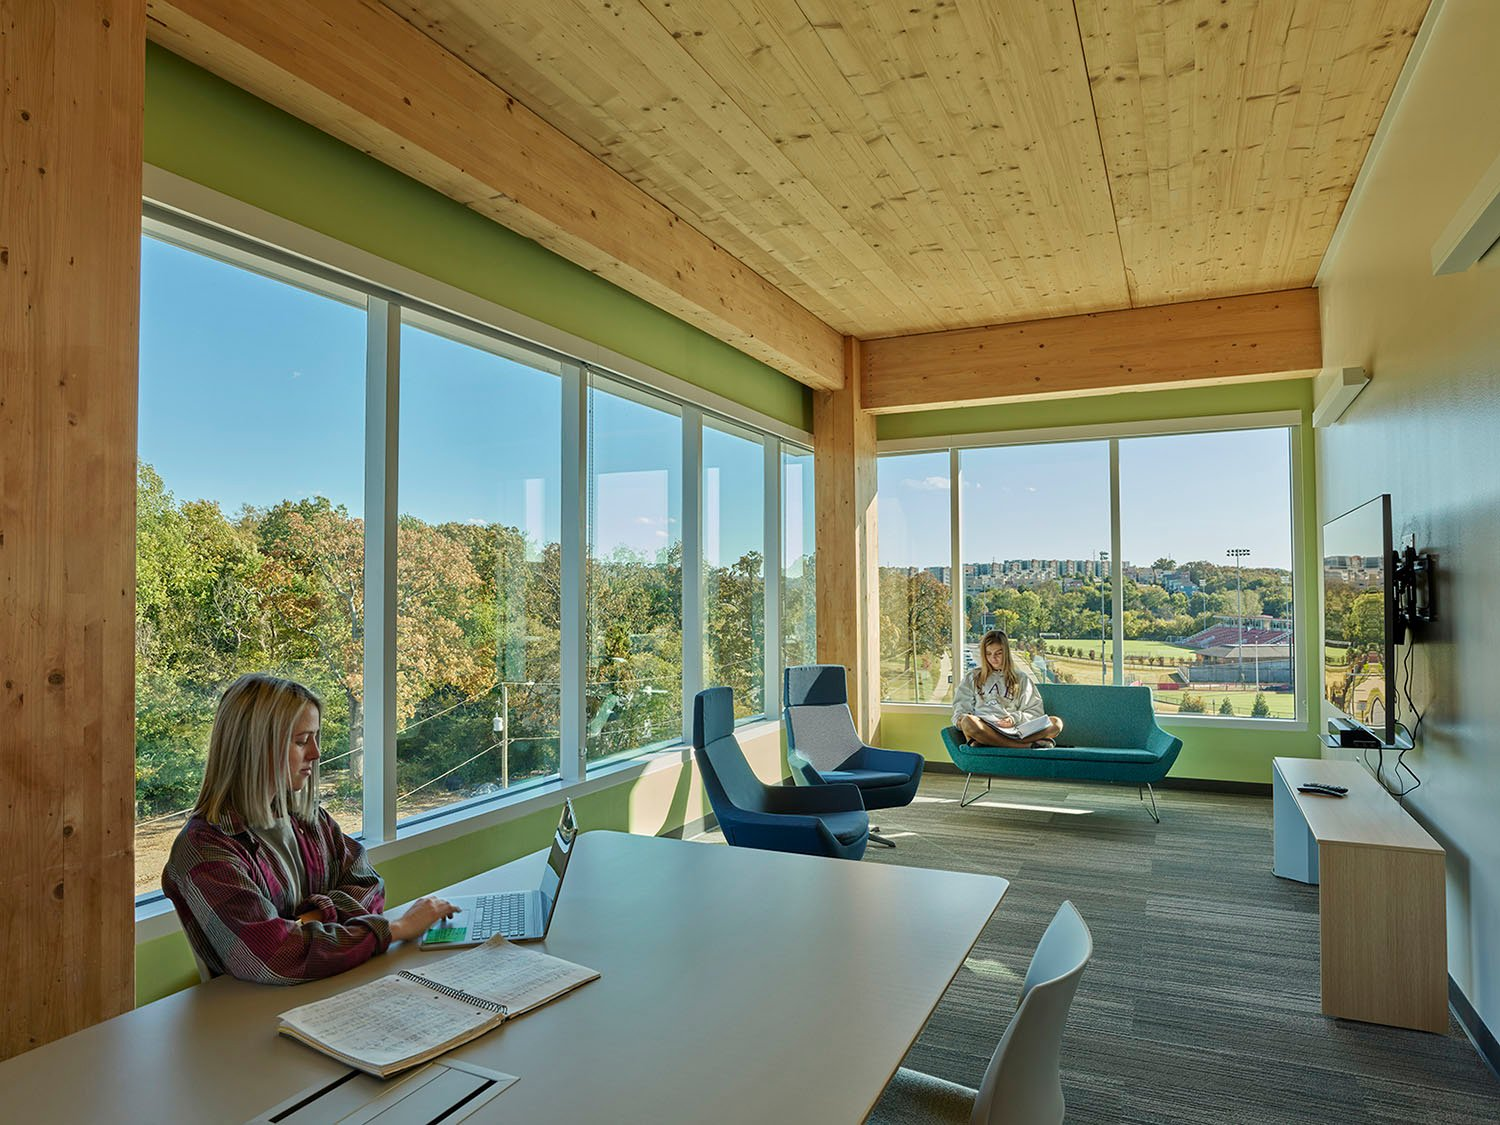 Quiet Wood Ceilinged Study Room at End of Each Wing Tim Hursley Photography